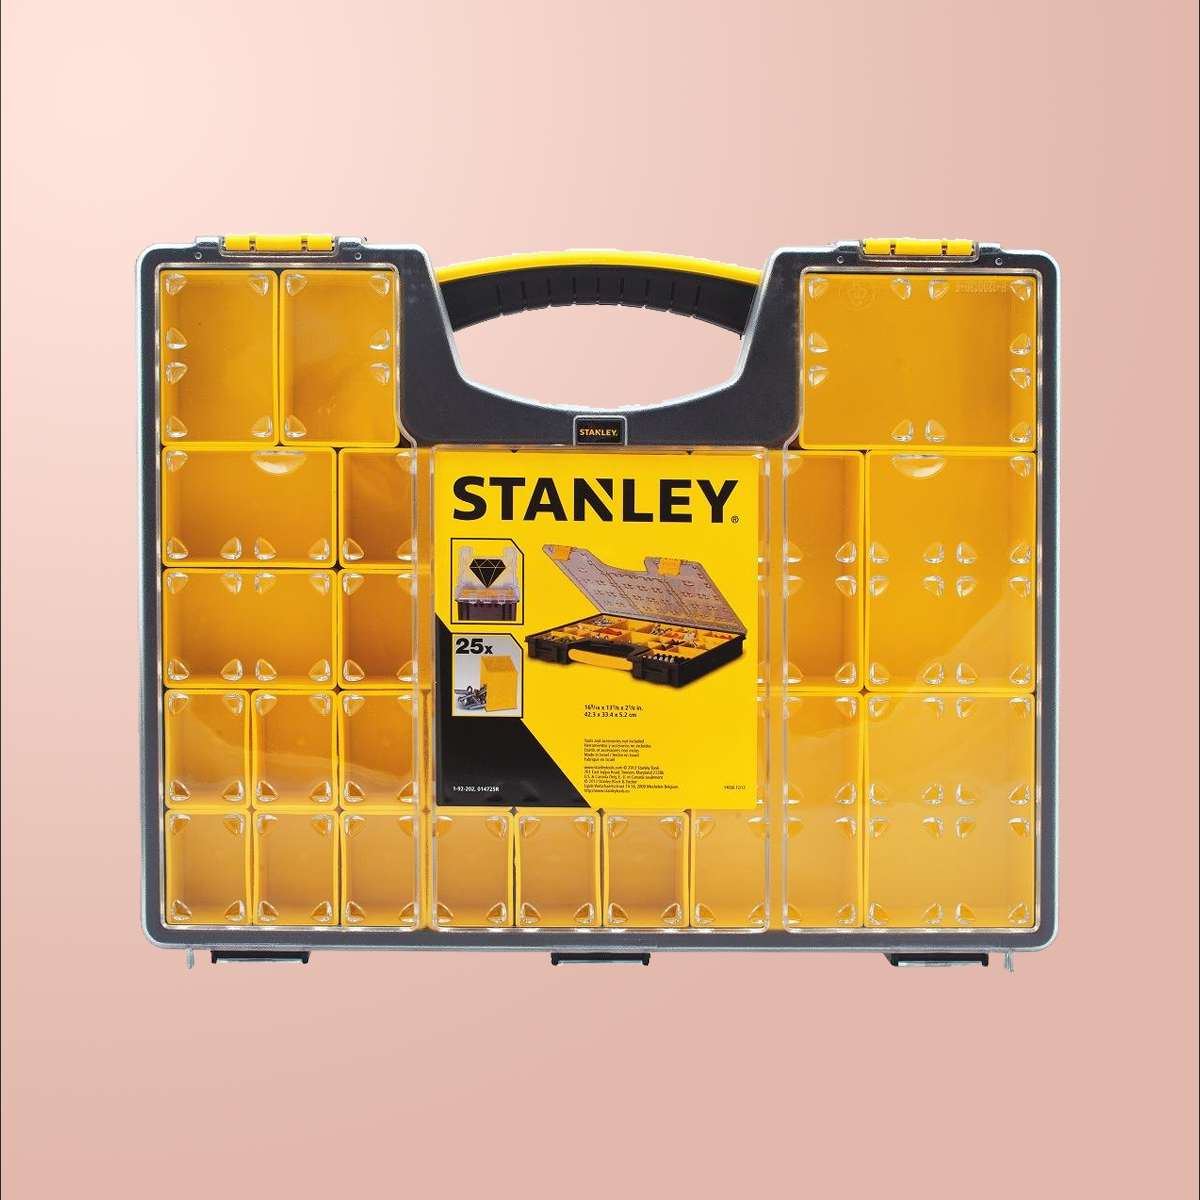 Stanley Removable Compartment Organizers.png